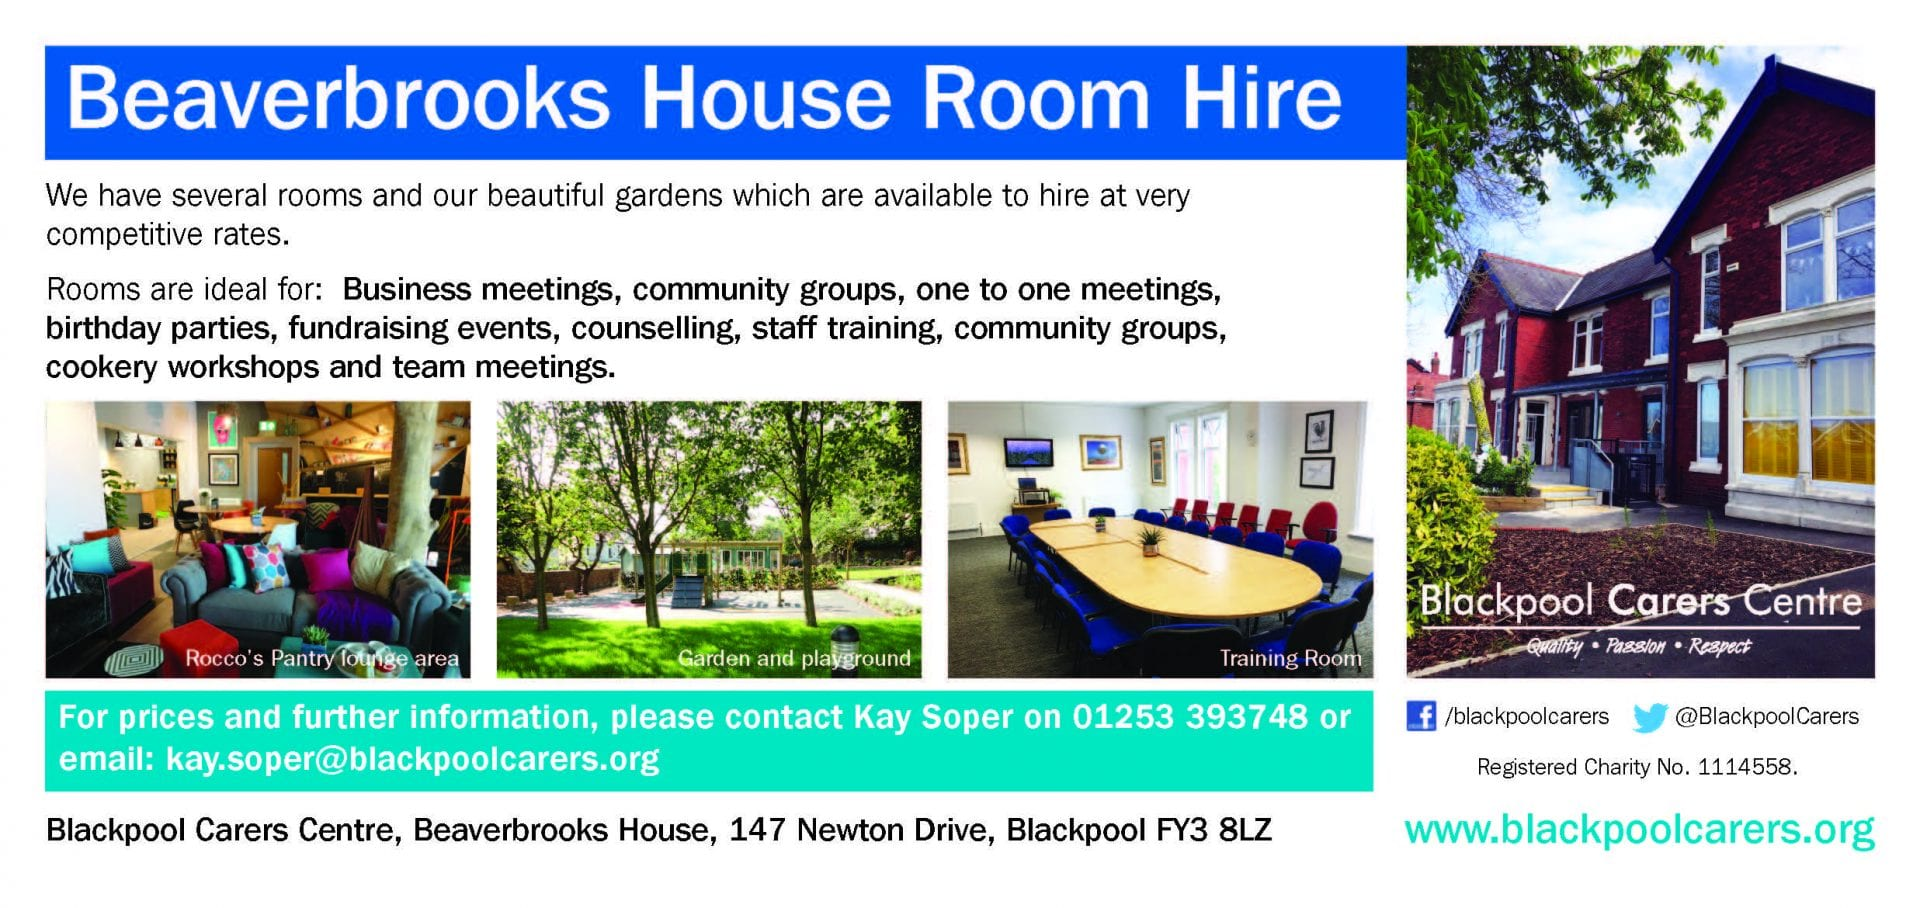 Room hire at Blackpool Carers Centre